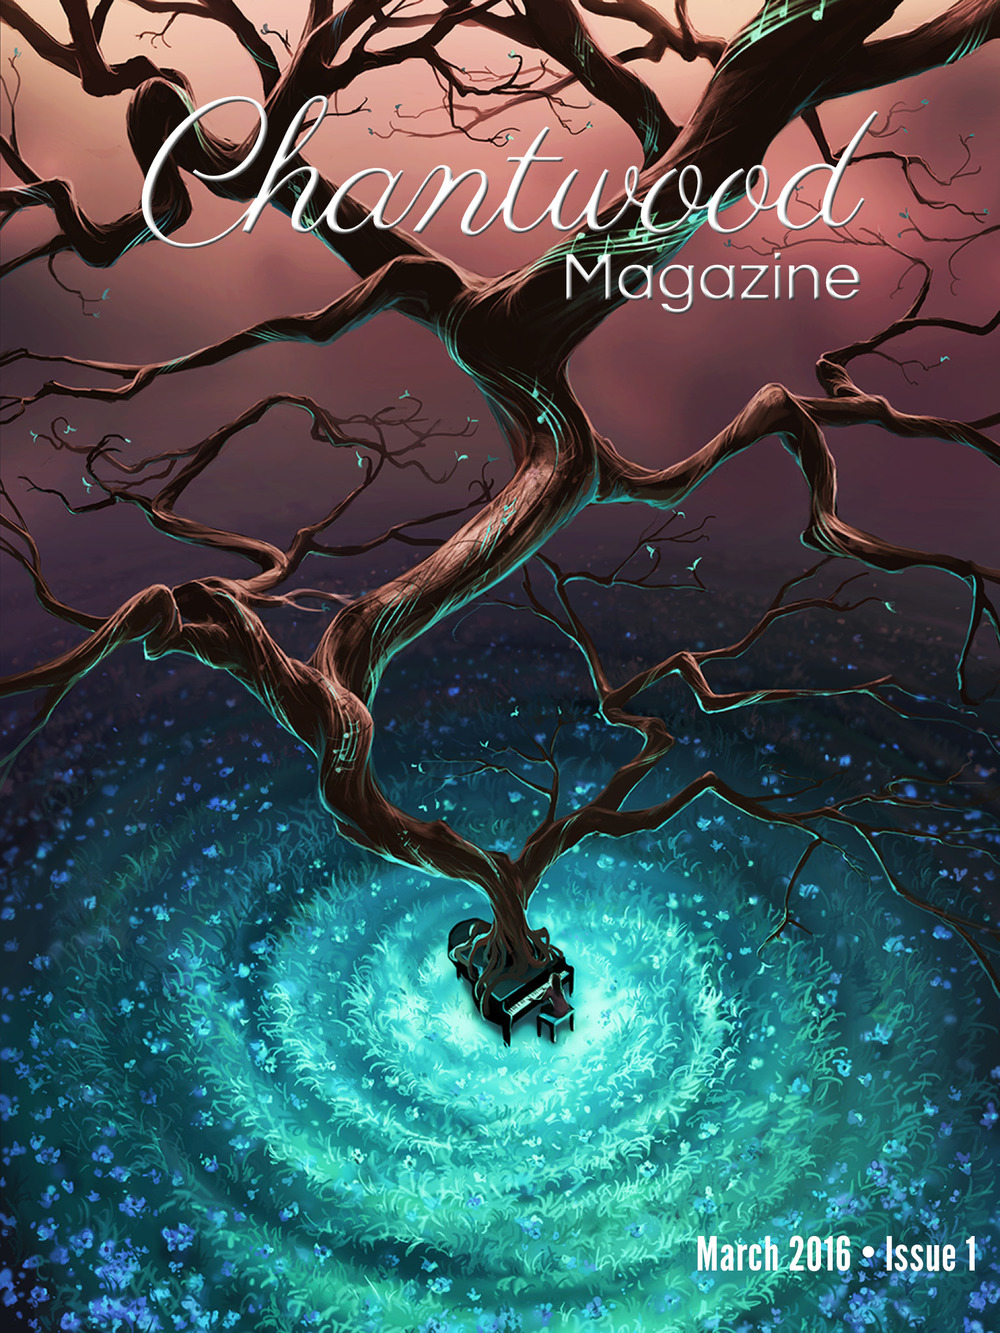 Chantwood Literary Magazine Issue 1